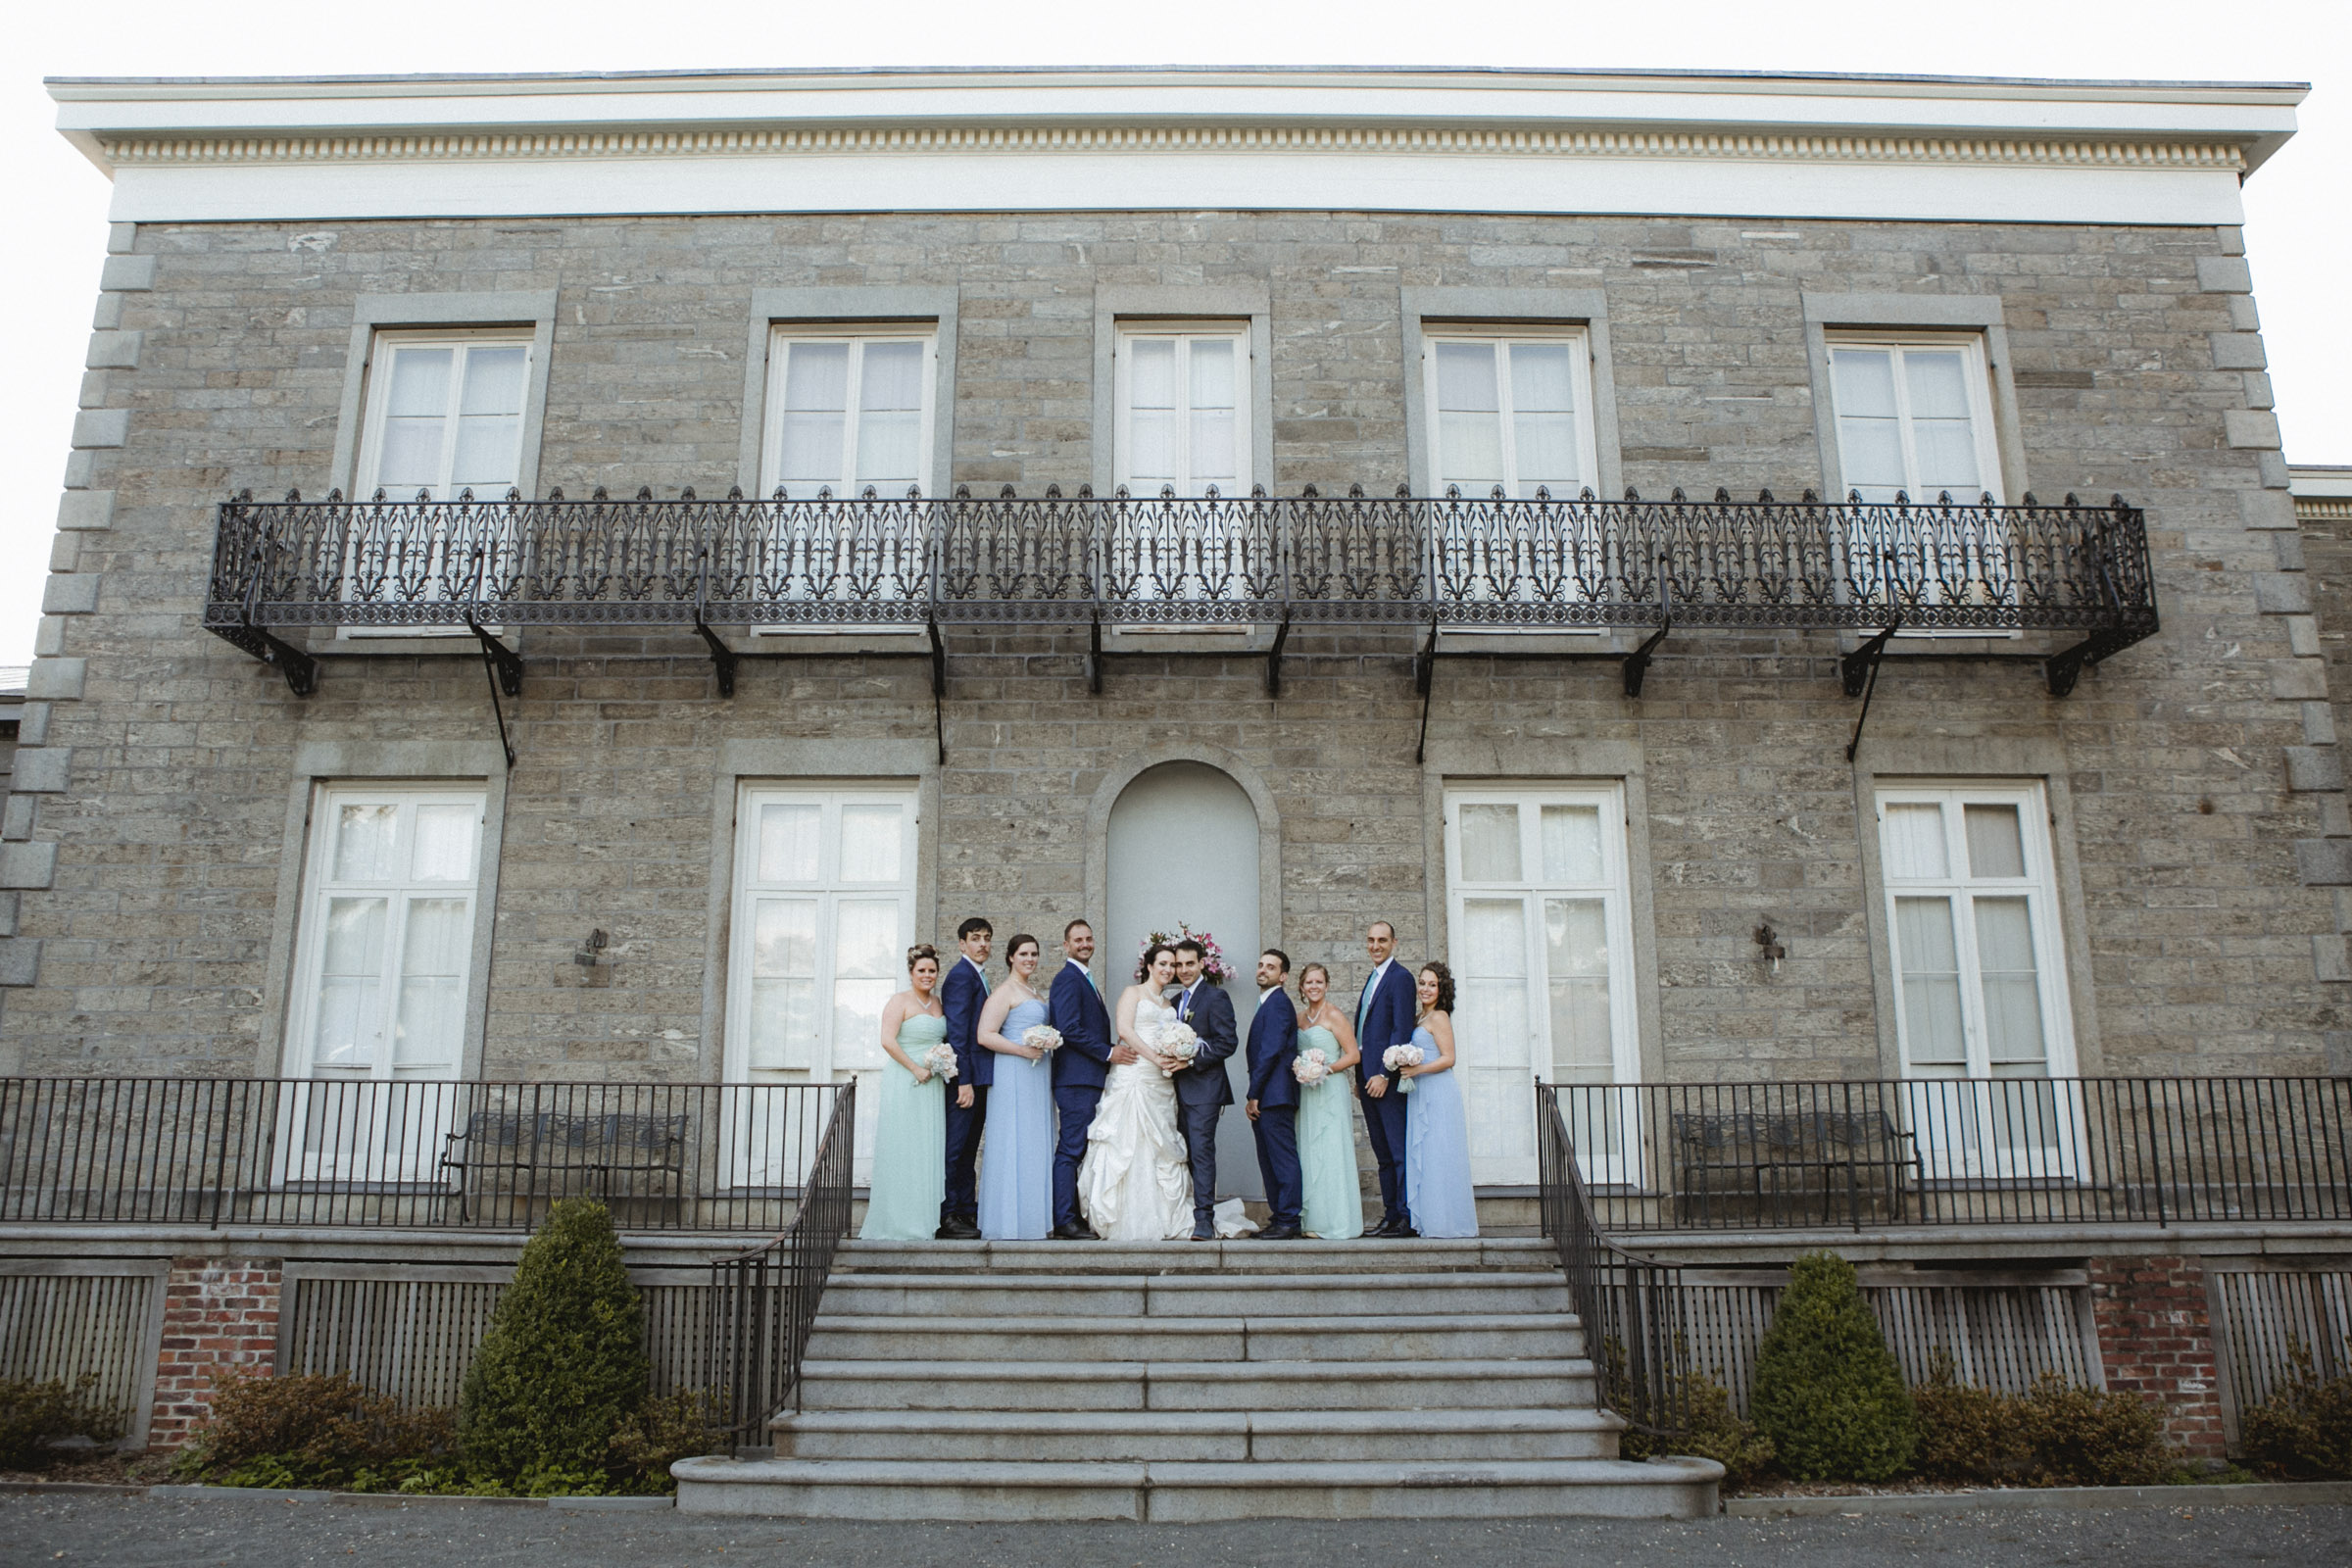 Bridal party | Bartow-Pell Mansion wedding | Manhattan wedding | Bronx Wedding | Cathy & Antonello's wedding | Amy Sims Photography